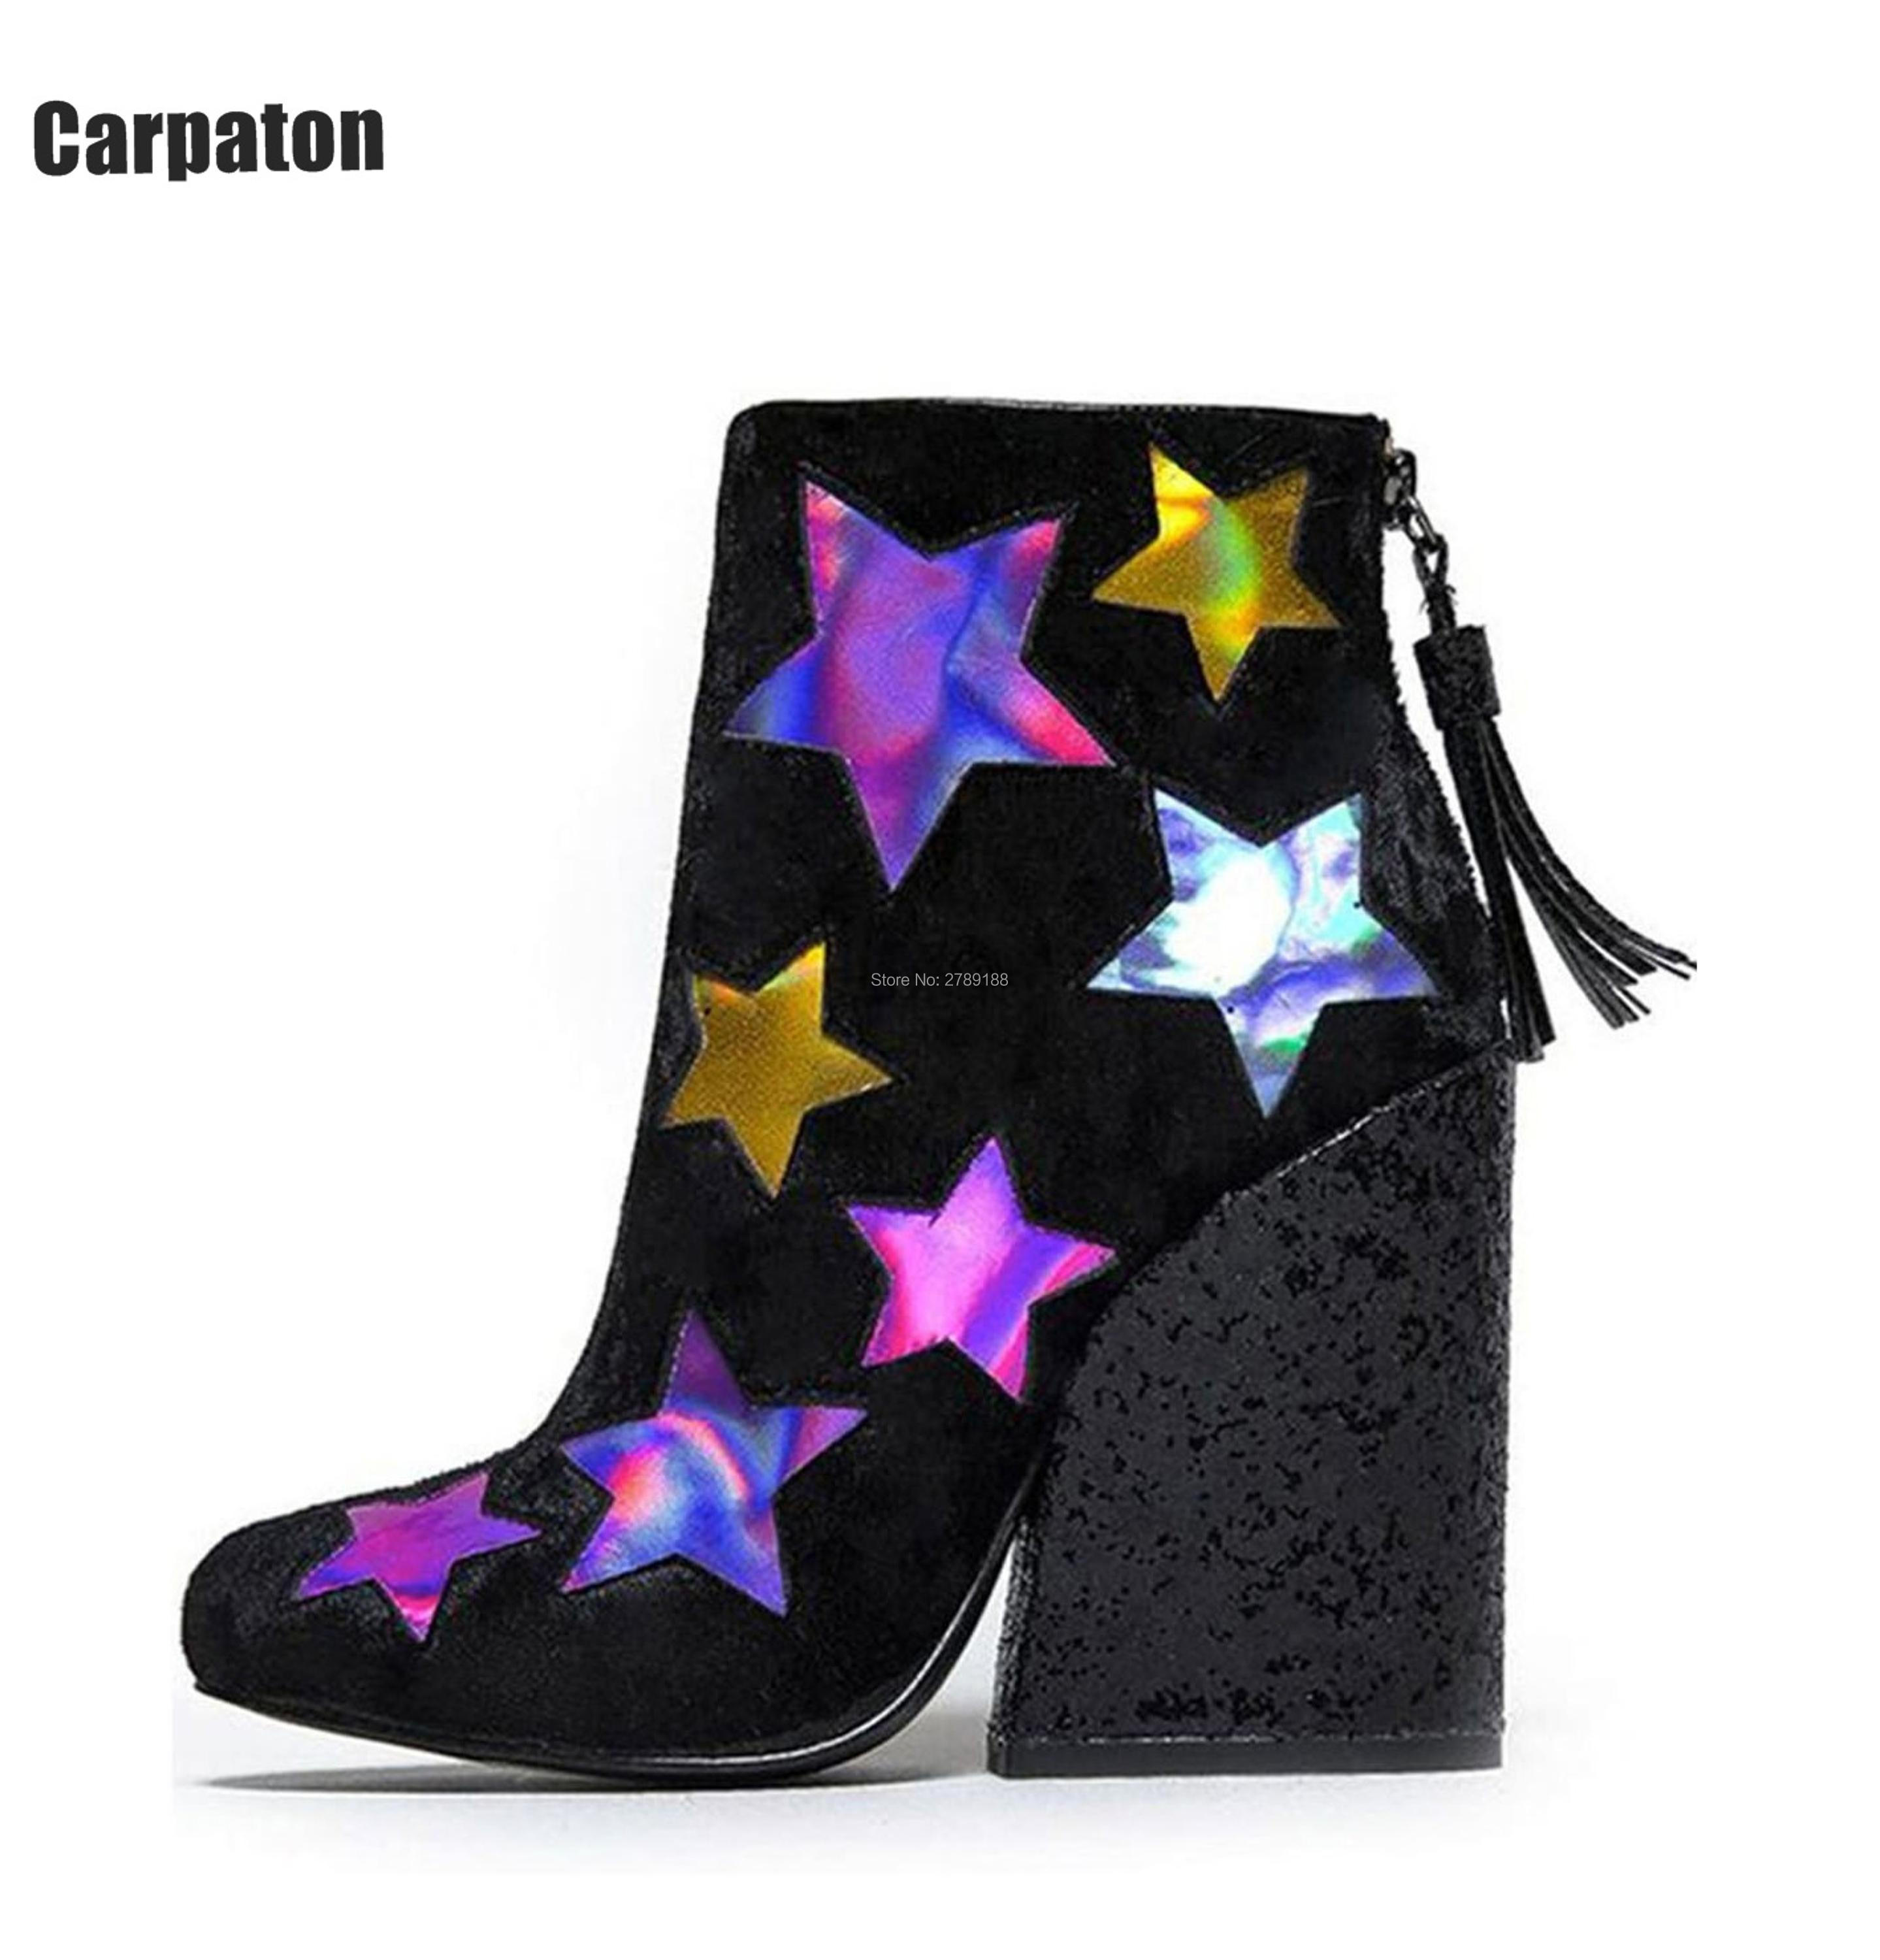 Spring Bling Bling Sequined Cloth High thick Heels Ankle Boots Back Zipper Tassel Shoes Mixed Colors Stars Fringed Pumps booties 2017 fashion style green sandals women bling bling mixed colors women shoes zipper summer ankle boots high heels sandals mujer